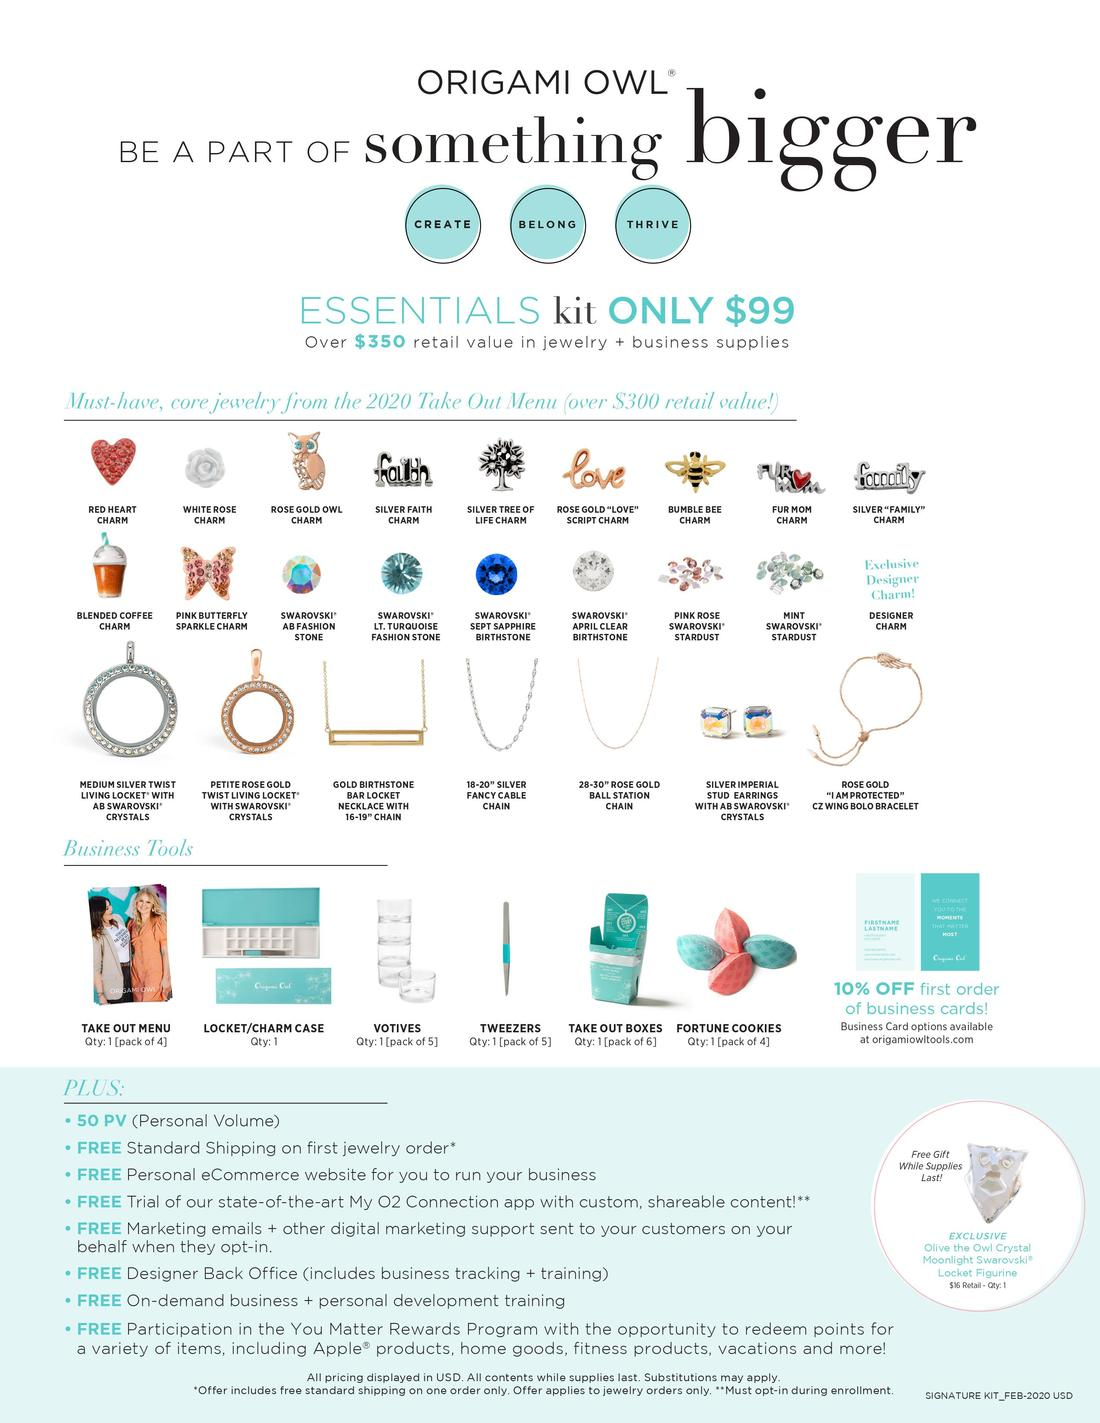 Origami Owl Deal for YOU! Seminole Fashions & More! - Tally Connection | 1423x1100